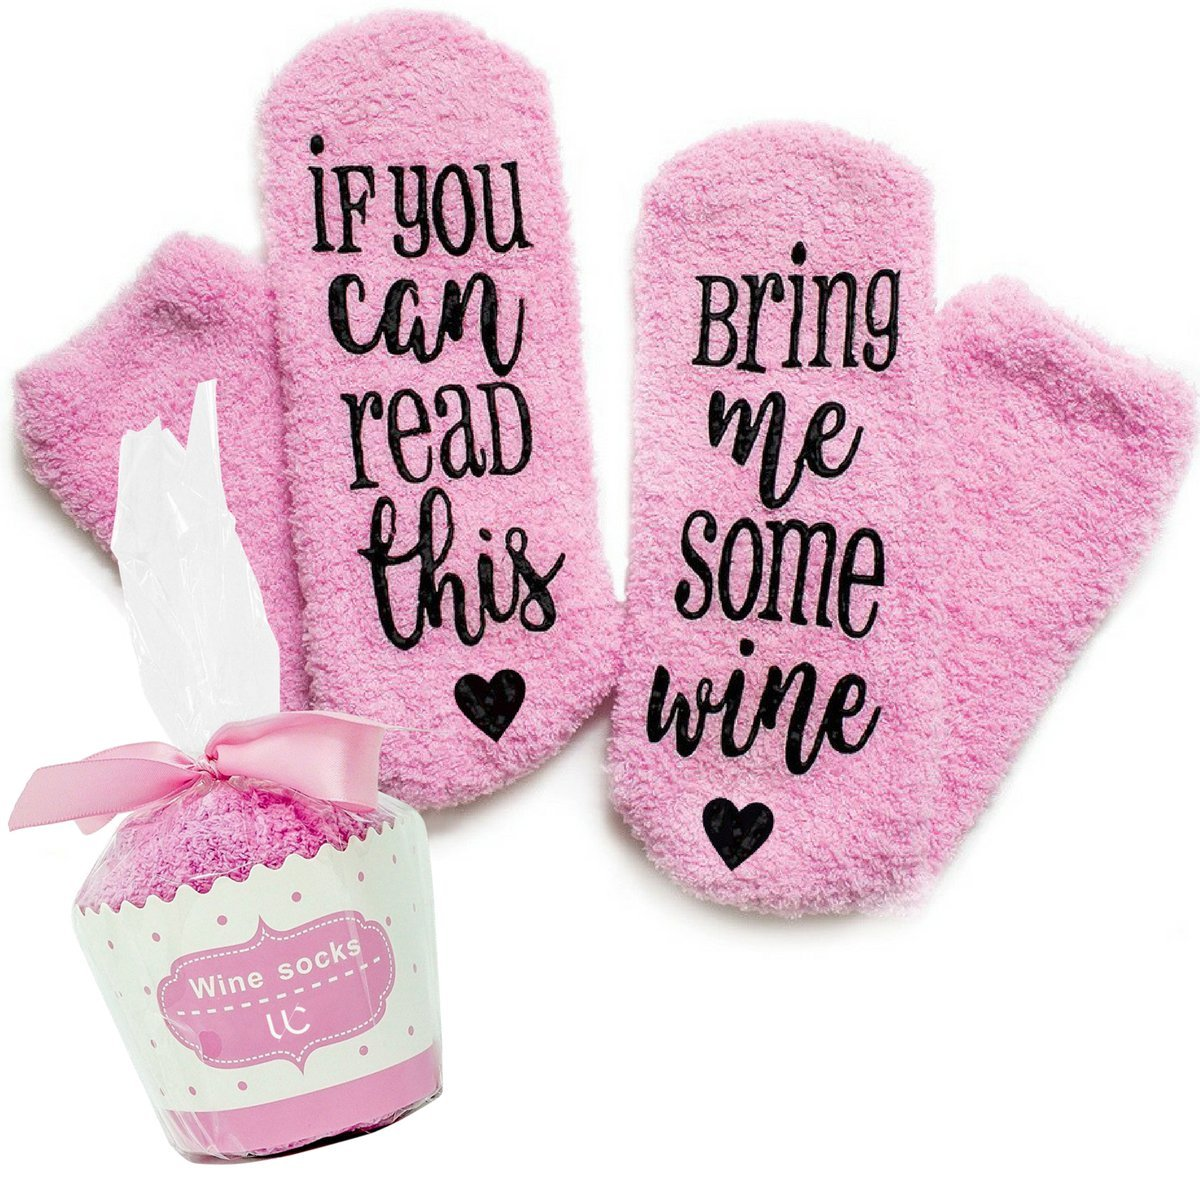 Wine Socks + Cupcake Packaging - Premium Combed Cotton ''If You Can Read This, Bring Me Some Wine'' Novelty Socks - Funny Gift For Men And Women - Perfect For Mothers Day, Birthday, and more!